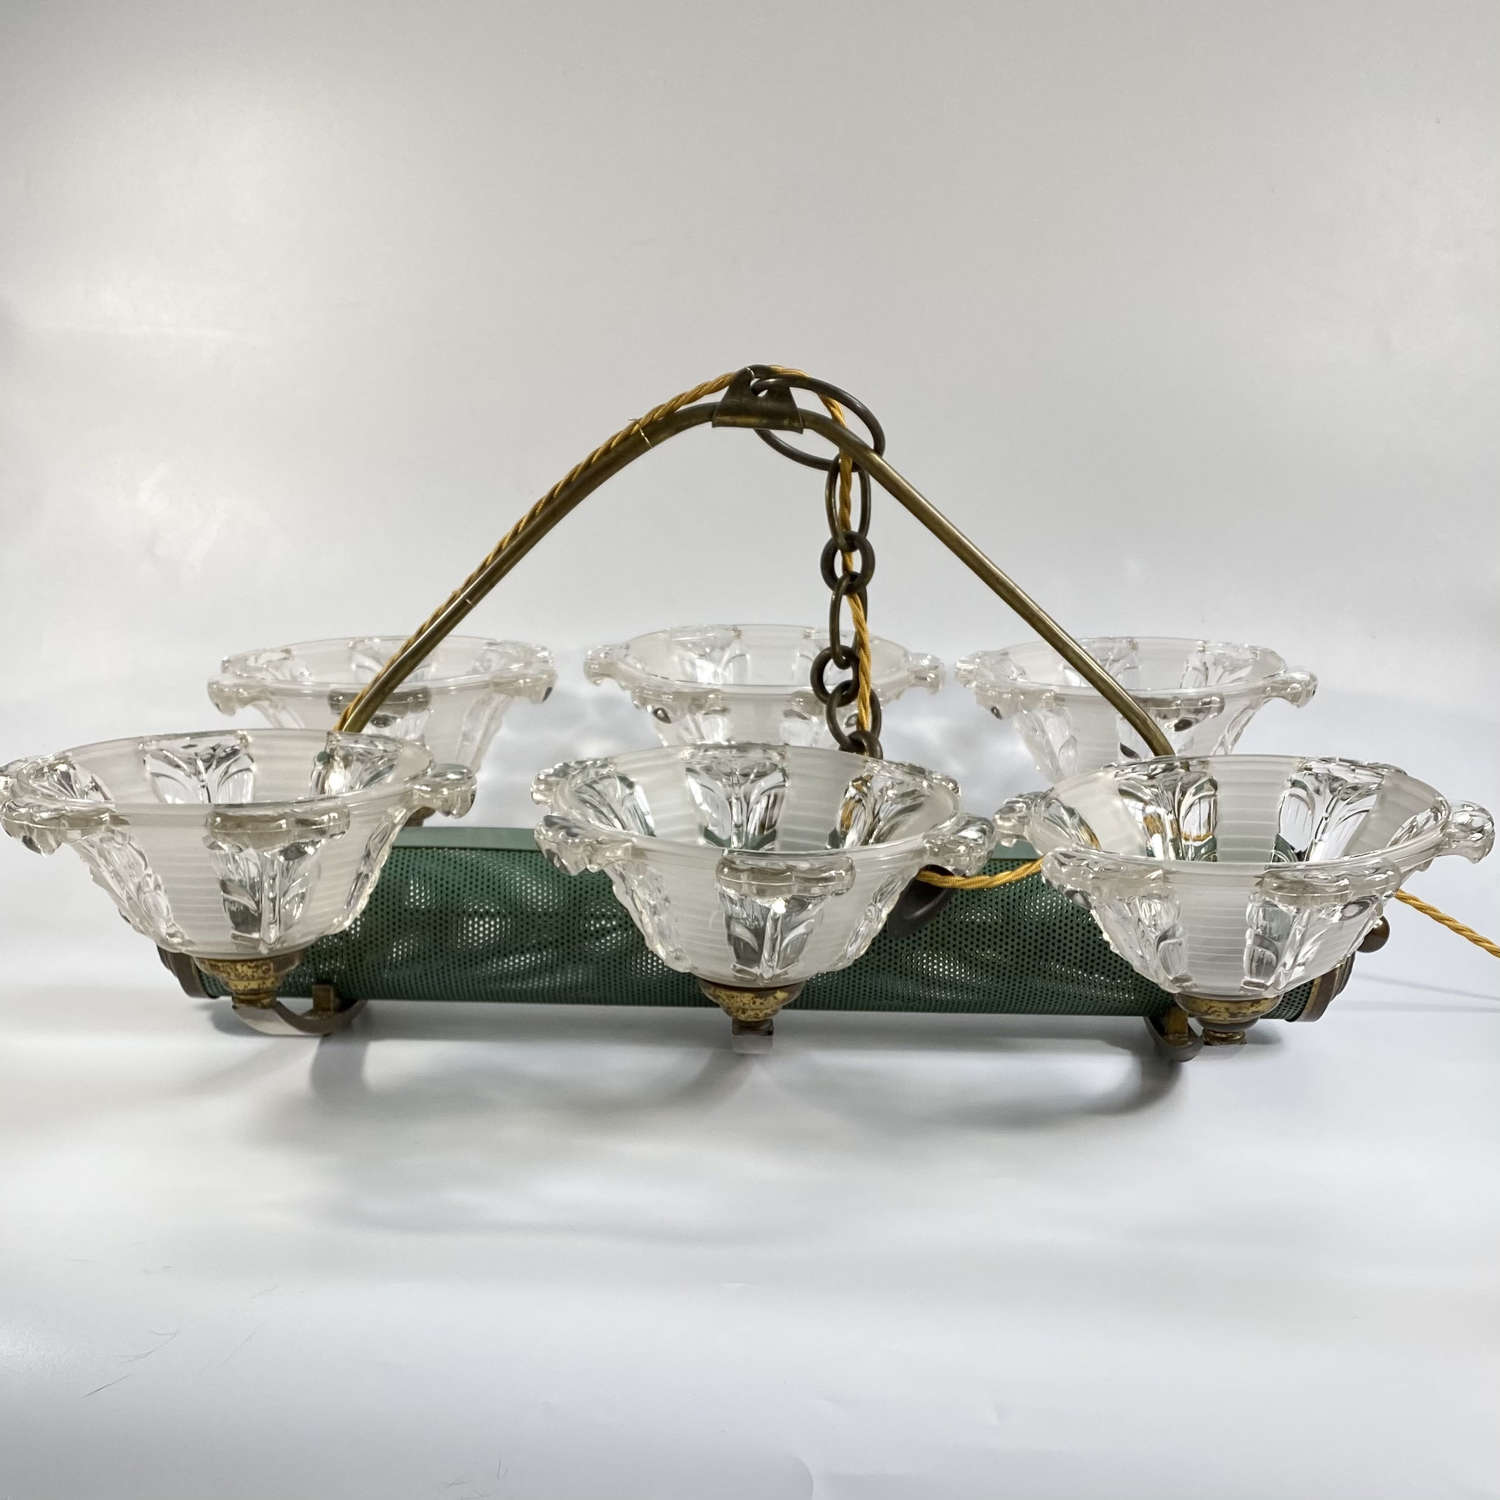 Art Deco French tole, ormolu and glass pendant chandelier